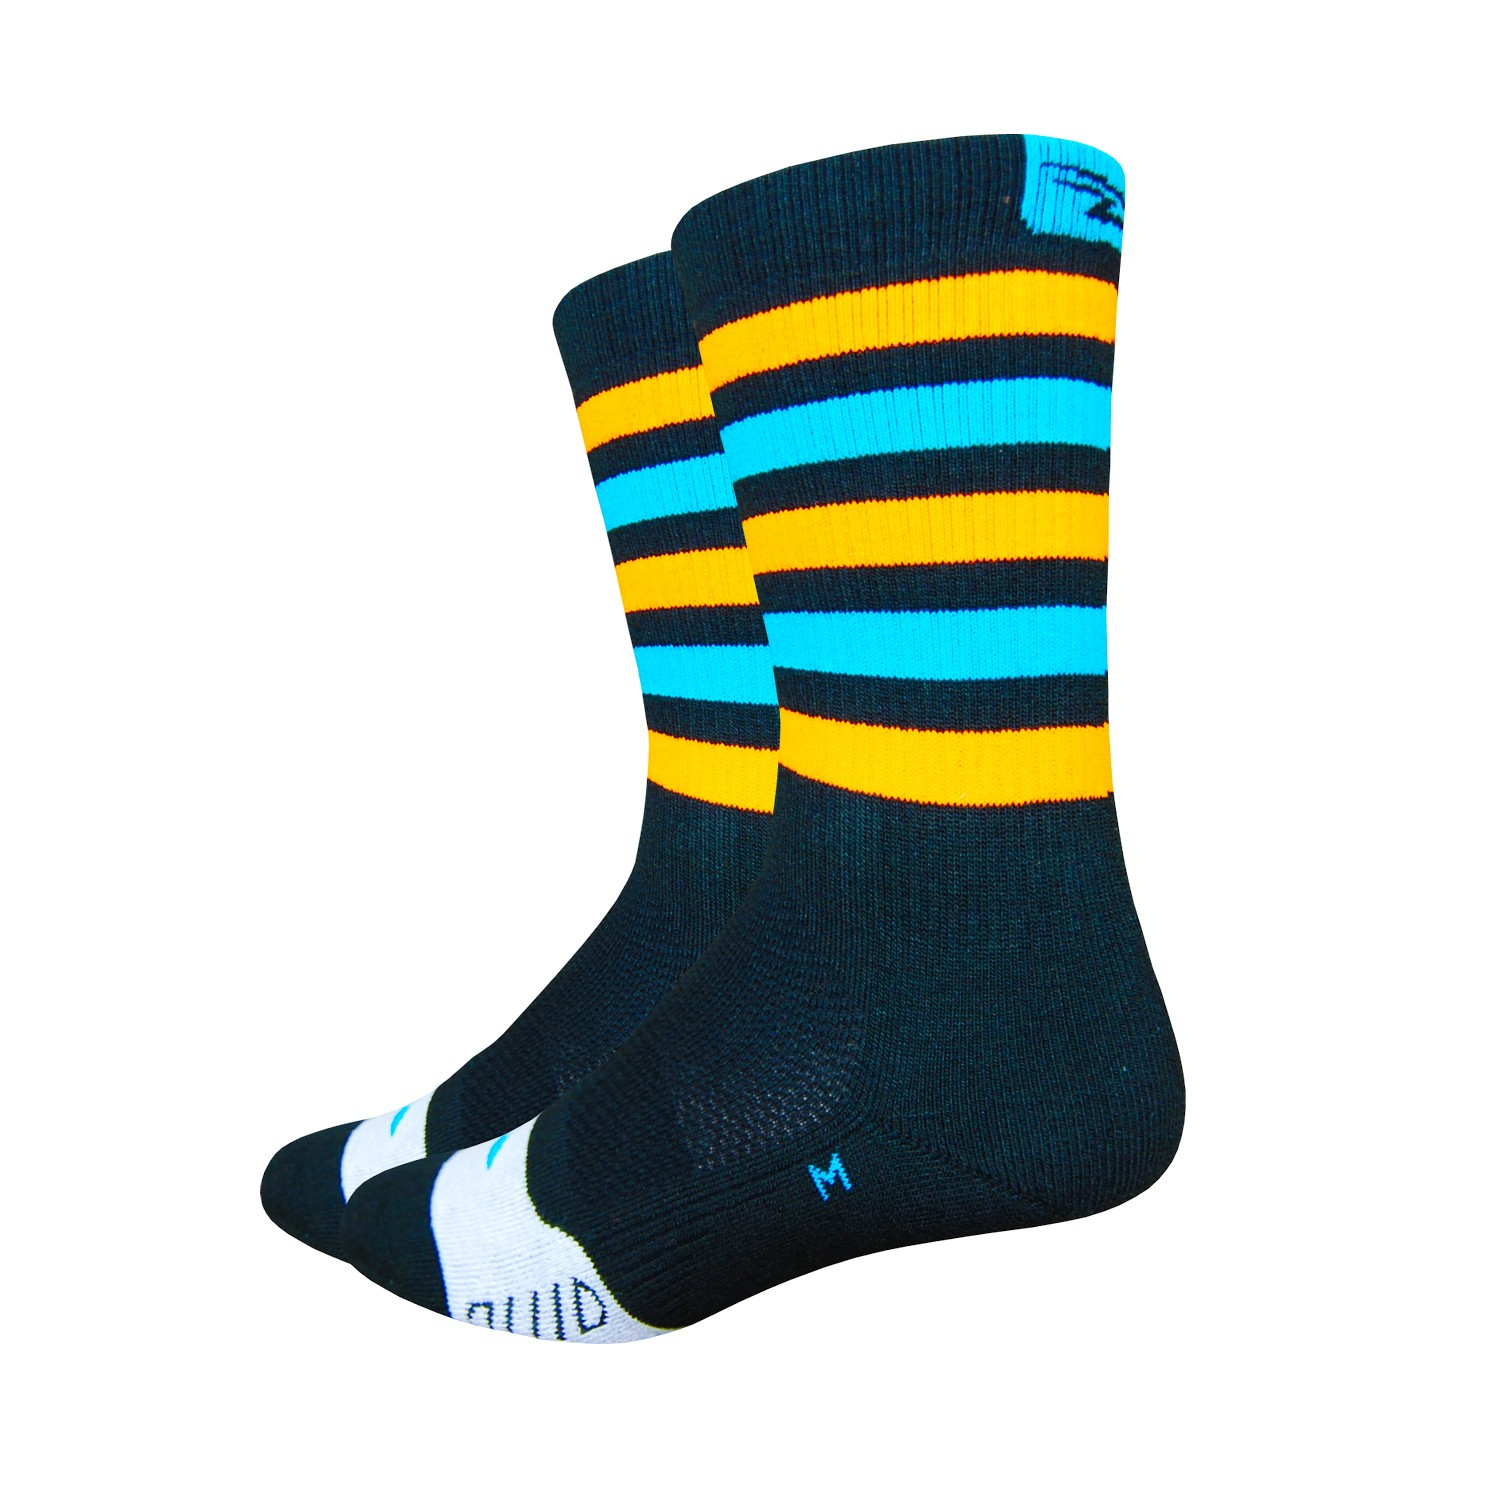 chaussettes de v lo defeet thermeator pour l 39 hiver couleur orange et bleu. Black Bedroom Furniture Sets. Home Design Ideas